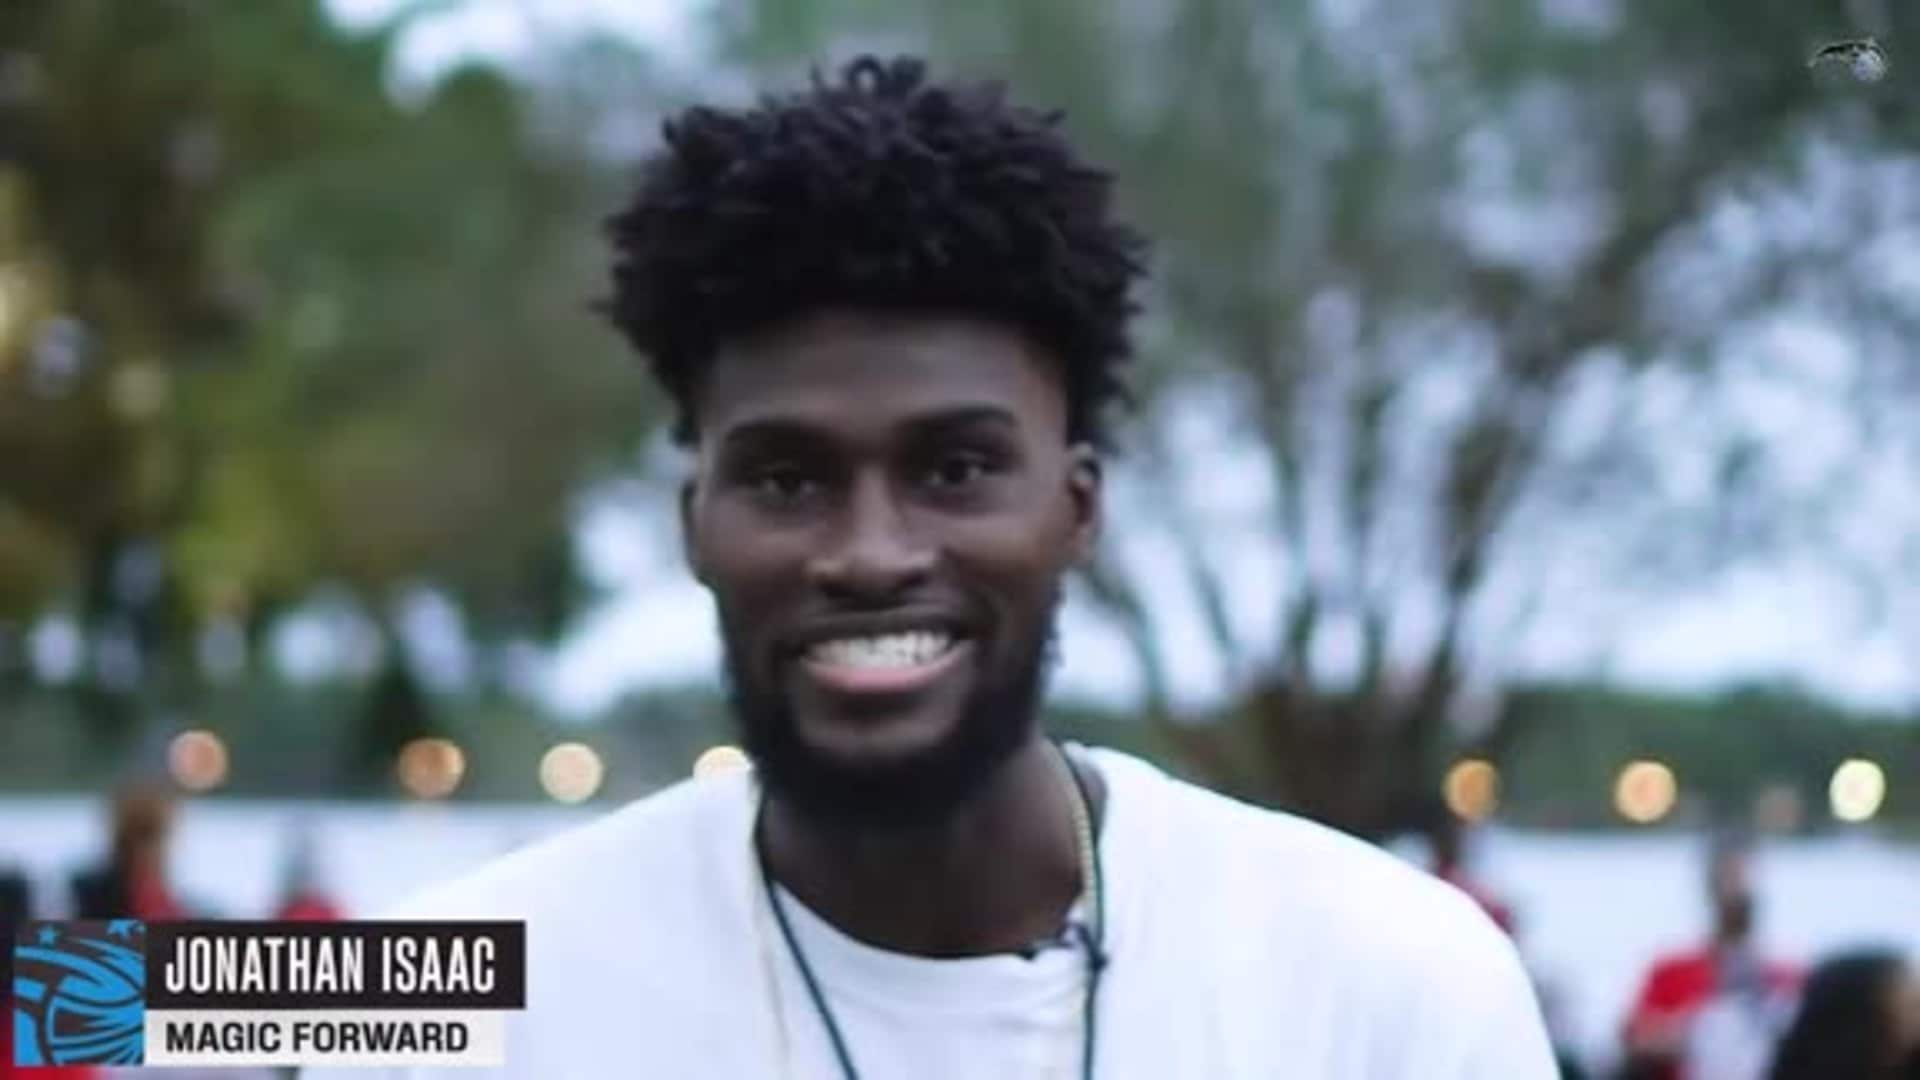 Jonathan Isaac's Hold Up the Lights Walk